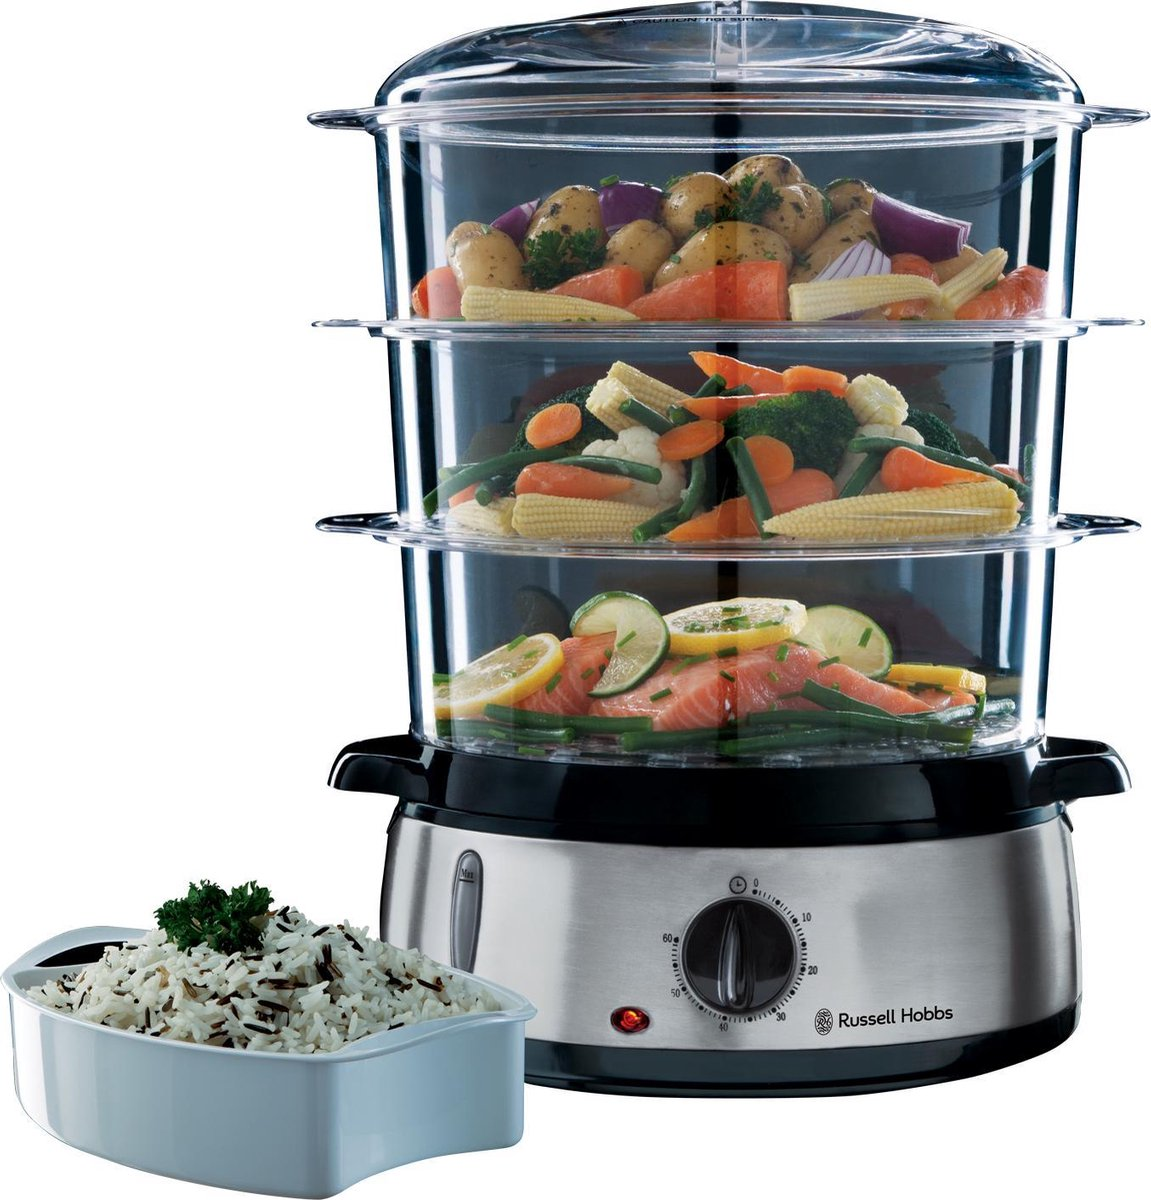 Russell Hobbs Cook@Home 19270-56 - Stoomkoker